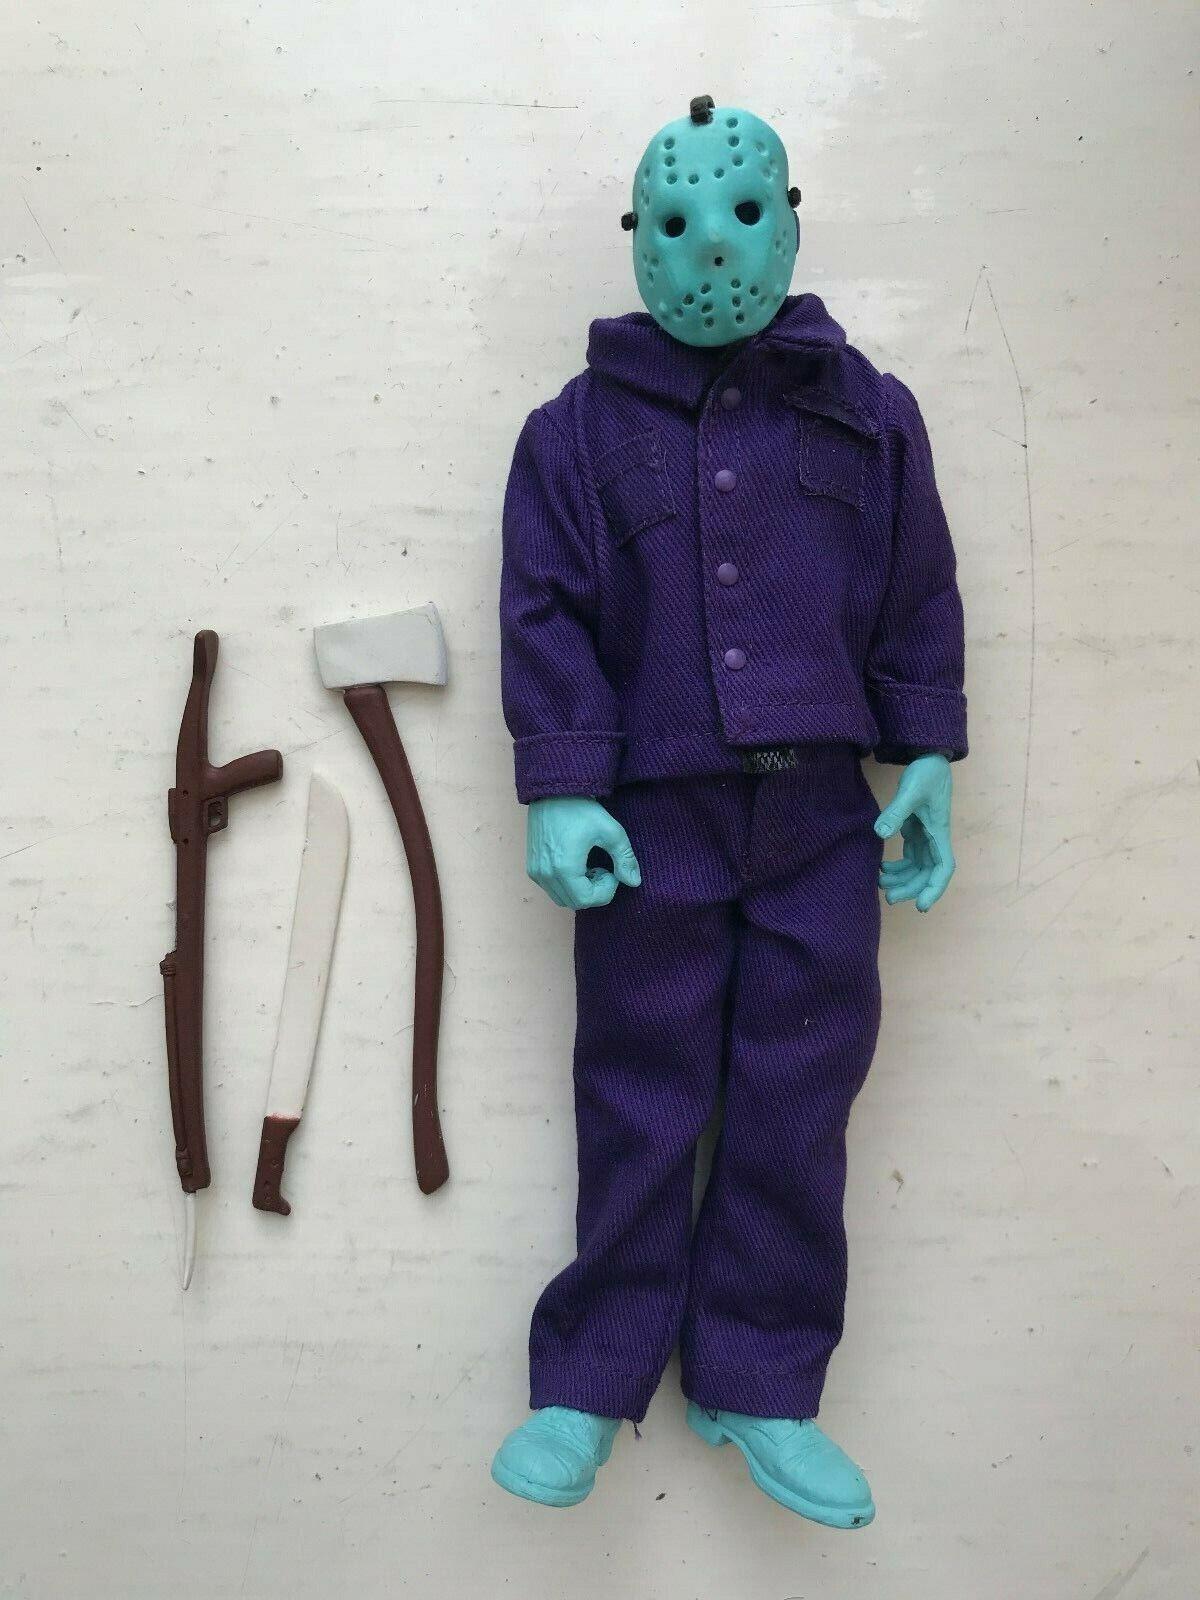 NECA Friday the 13TH Jason Voorhees vestidos Nes exclusivo Retro Glow oscuro figura